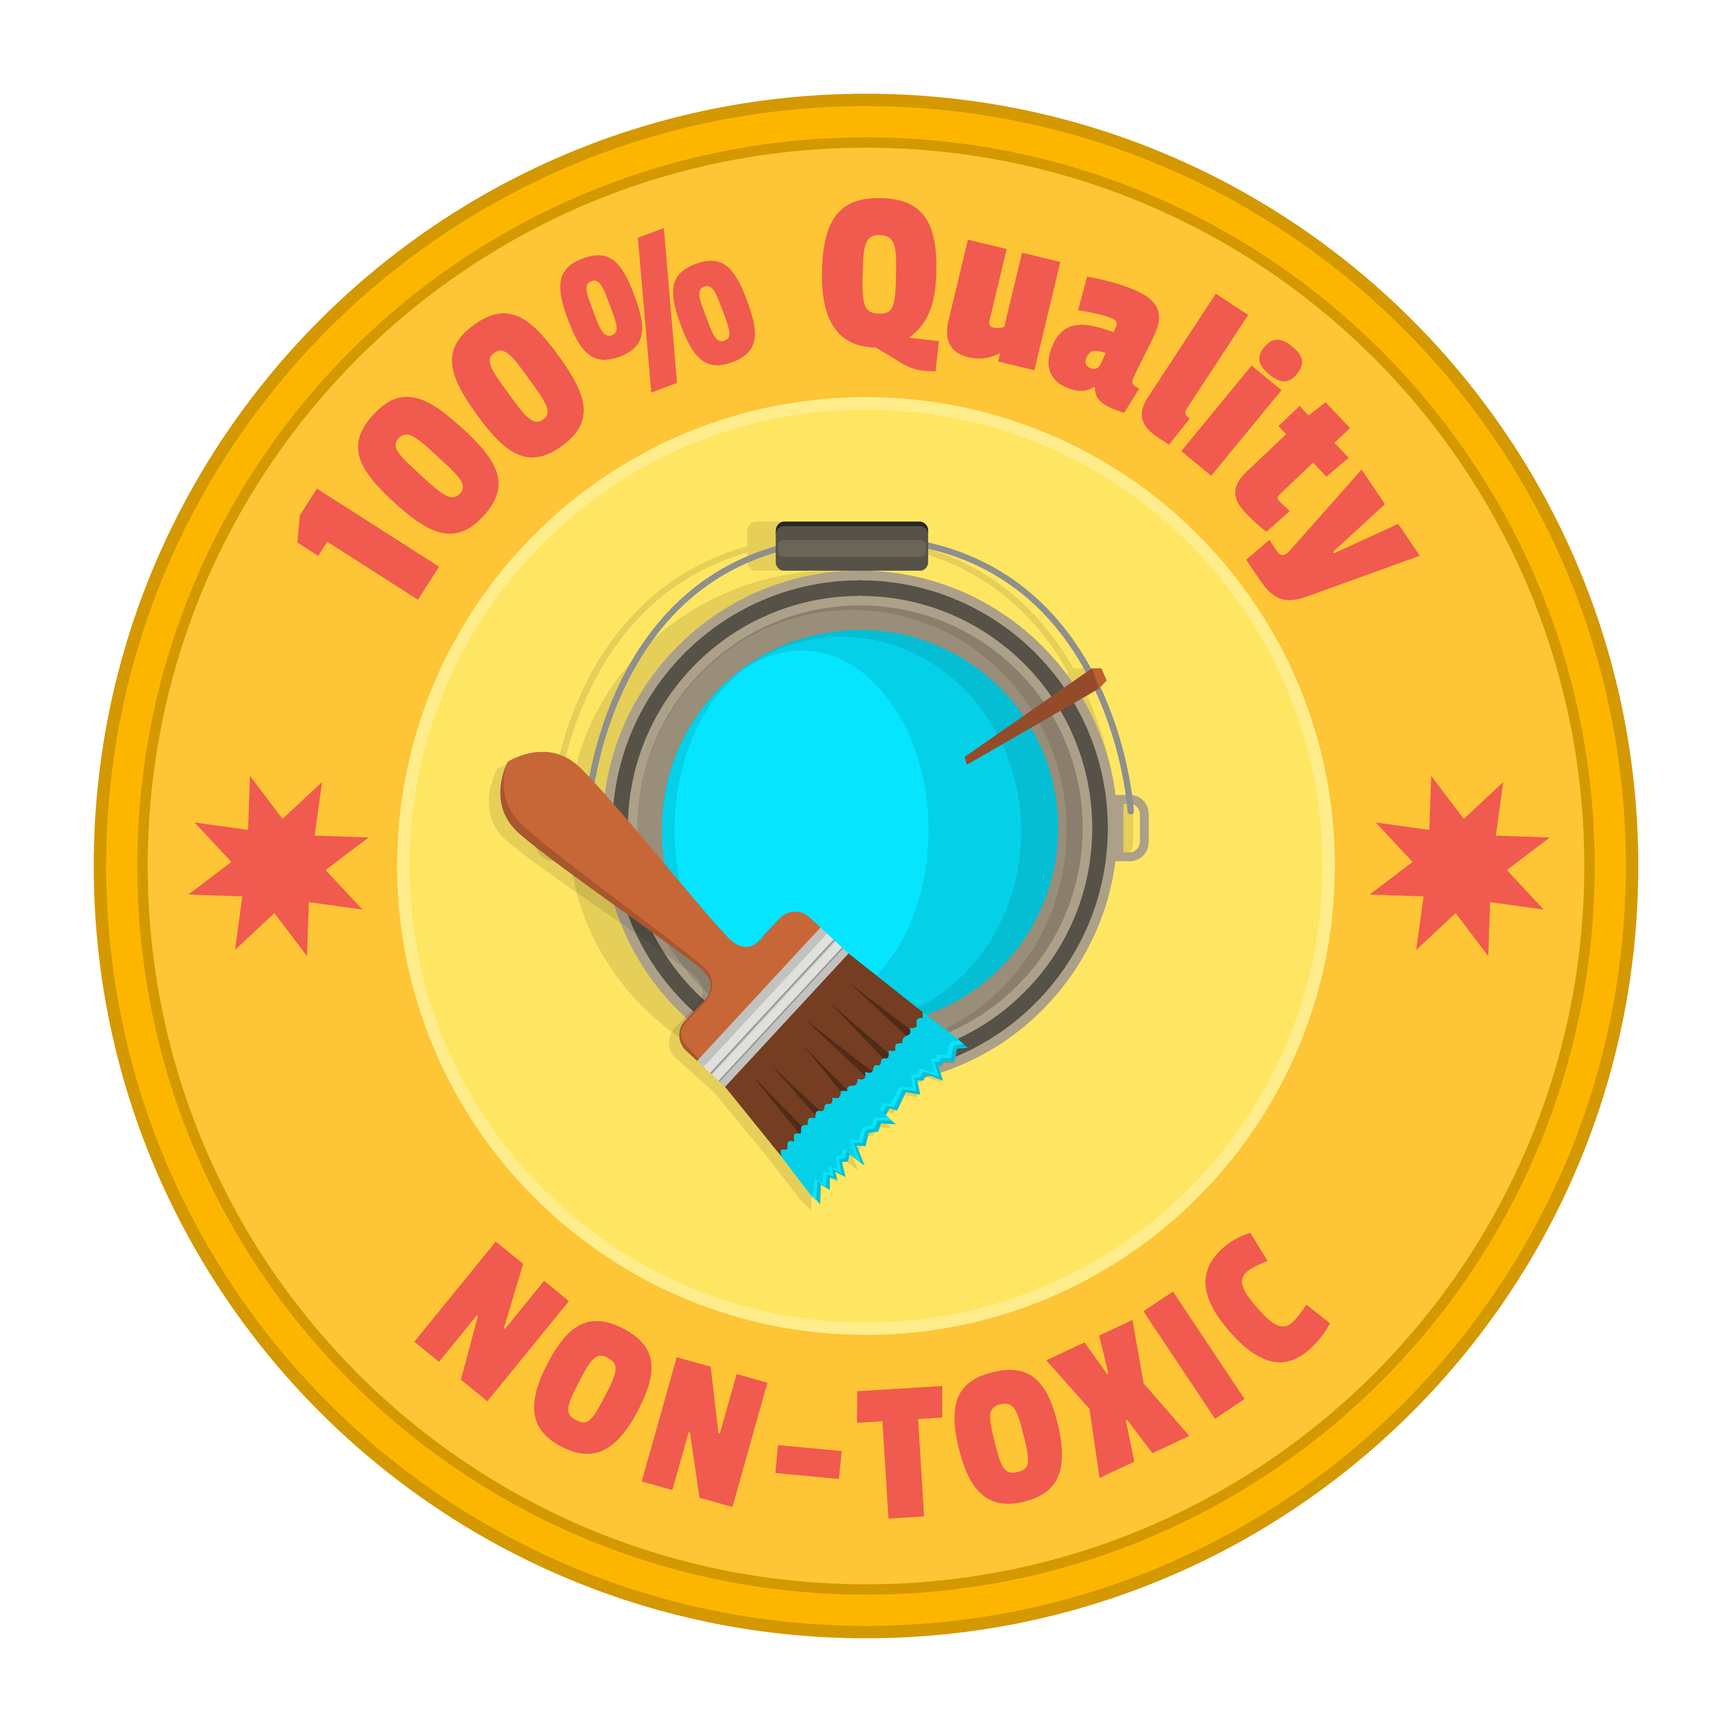 Sign of non-toxic paint